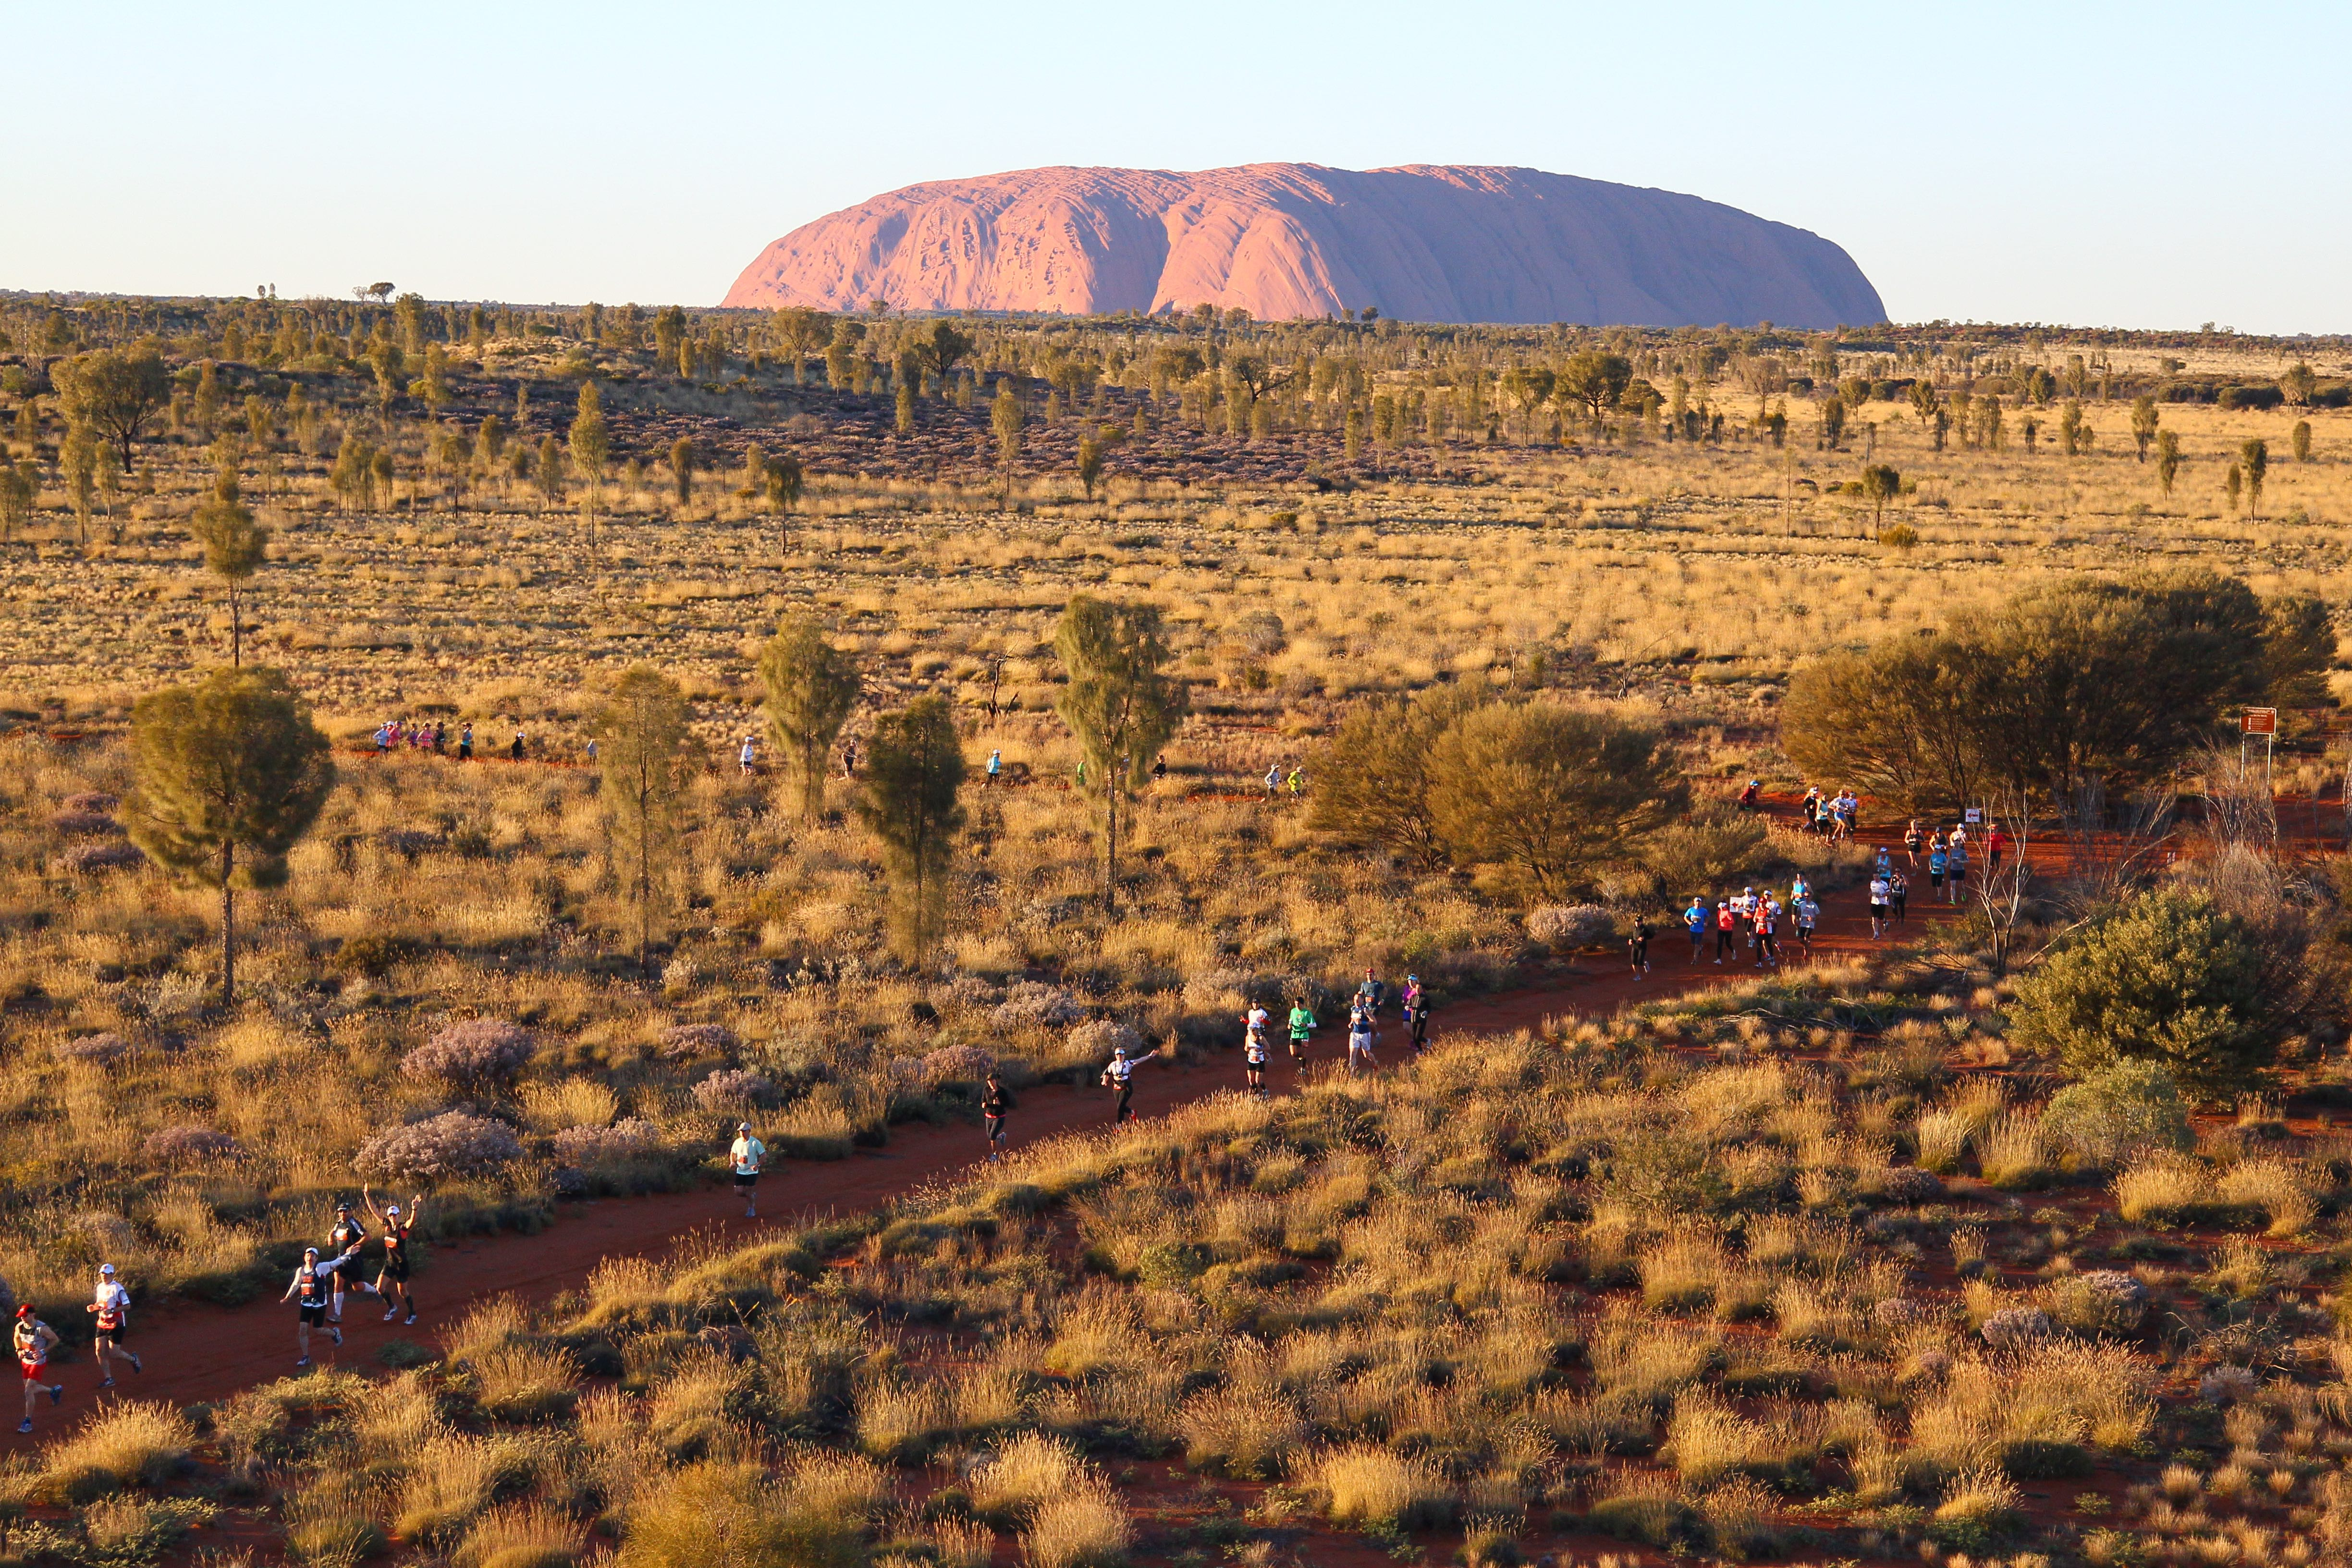 Runners compete in the Australian Outback Marathon with Uluru in the background